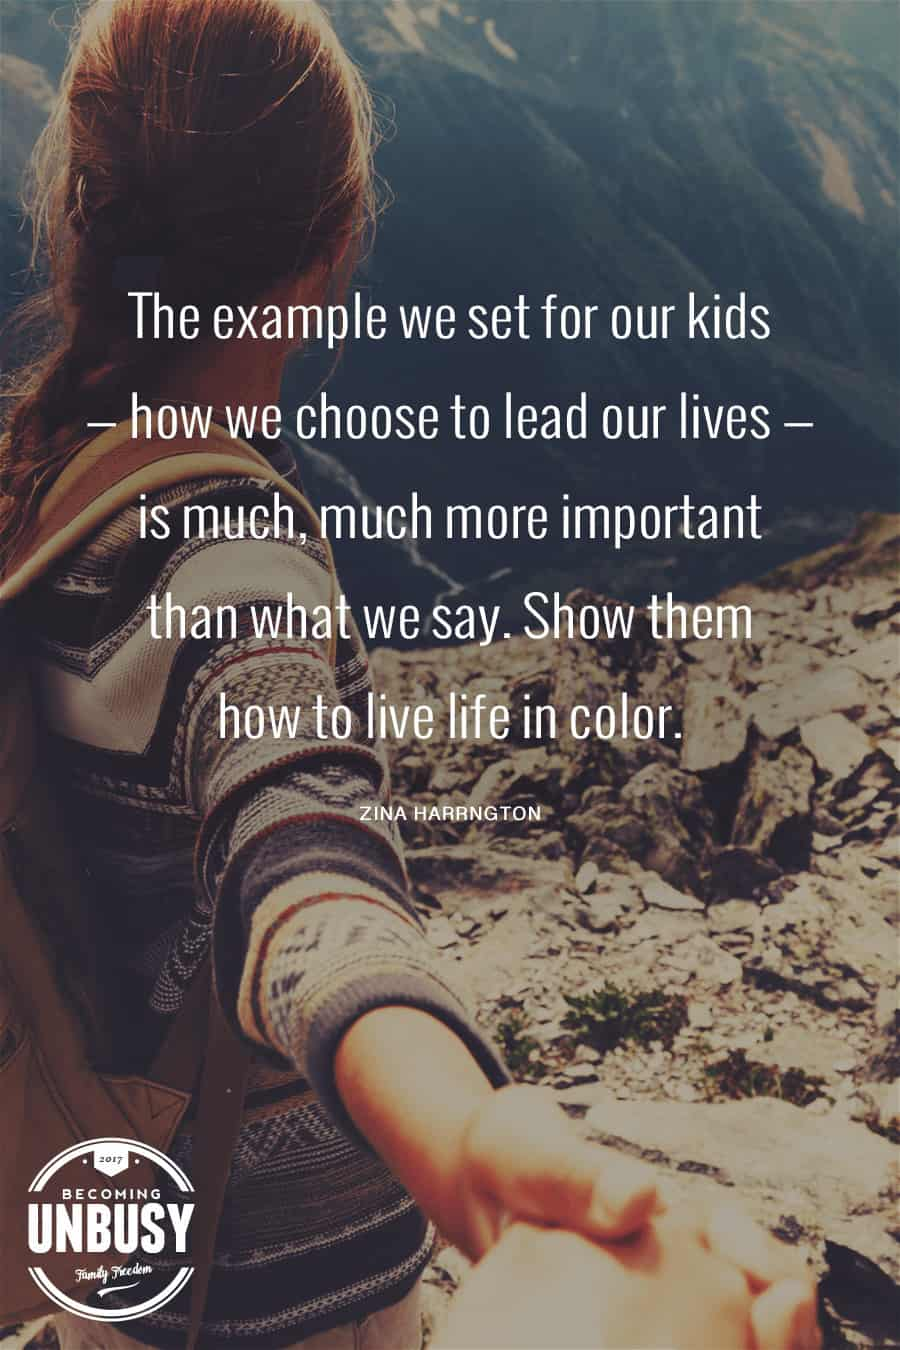 The example we set for our kids — how we choose to lead our lives — is much, much more important than what we say. Show them how to live life in color. #Quote #BecomingUnBusy *Love this video and site!